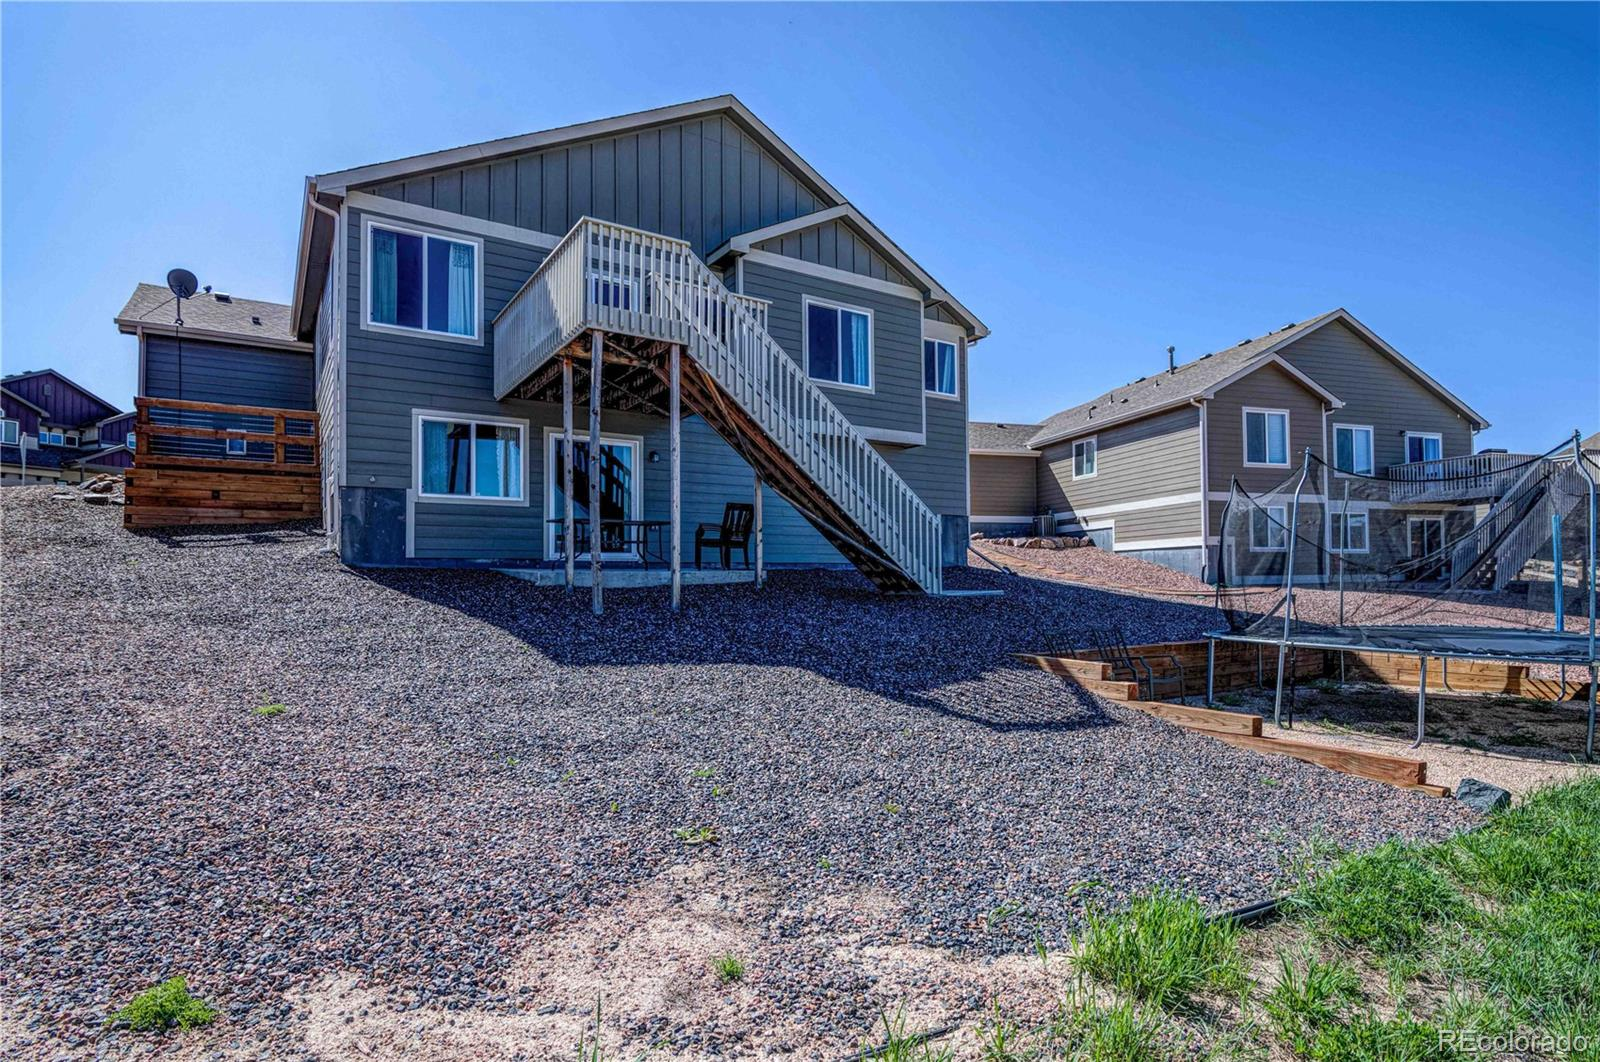 MLS# 5849980 - 36 - 17856 17856 Way, Monument, CO 80132